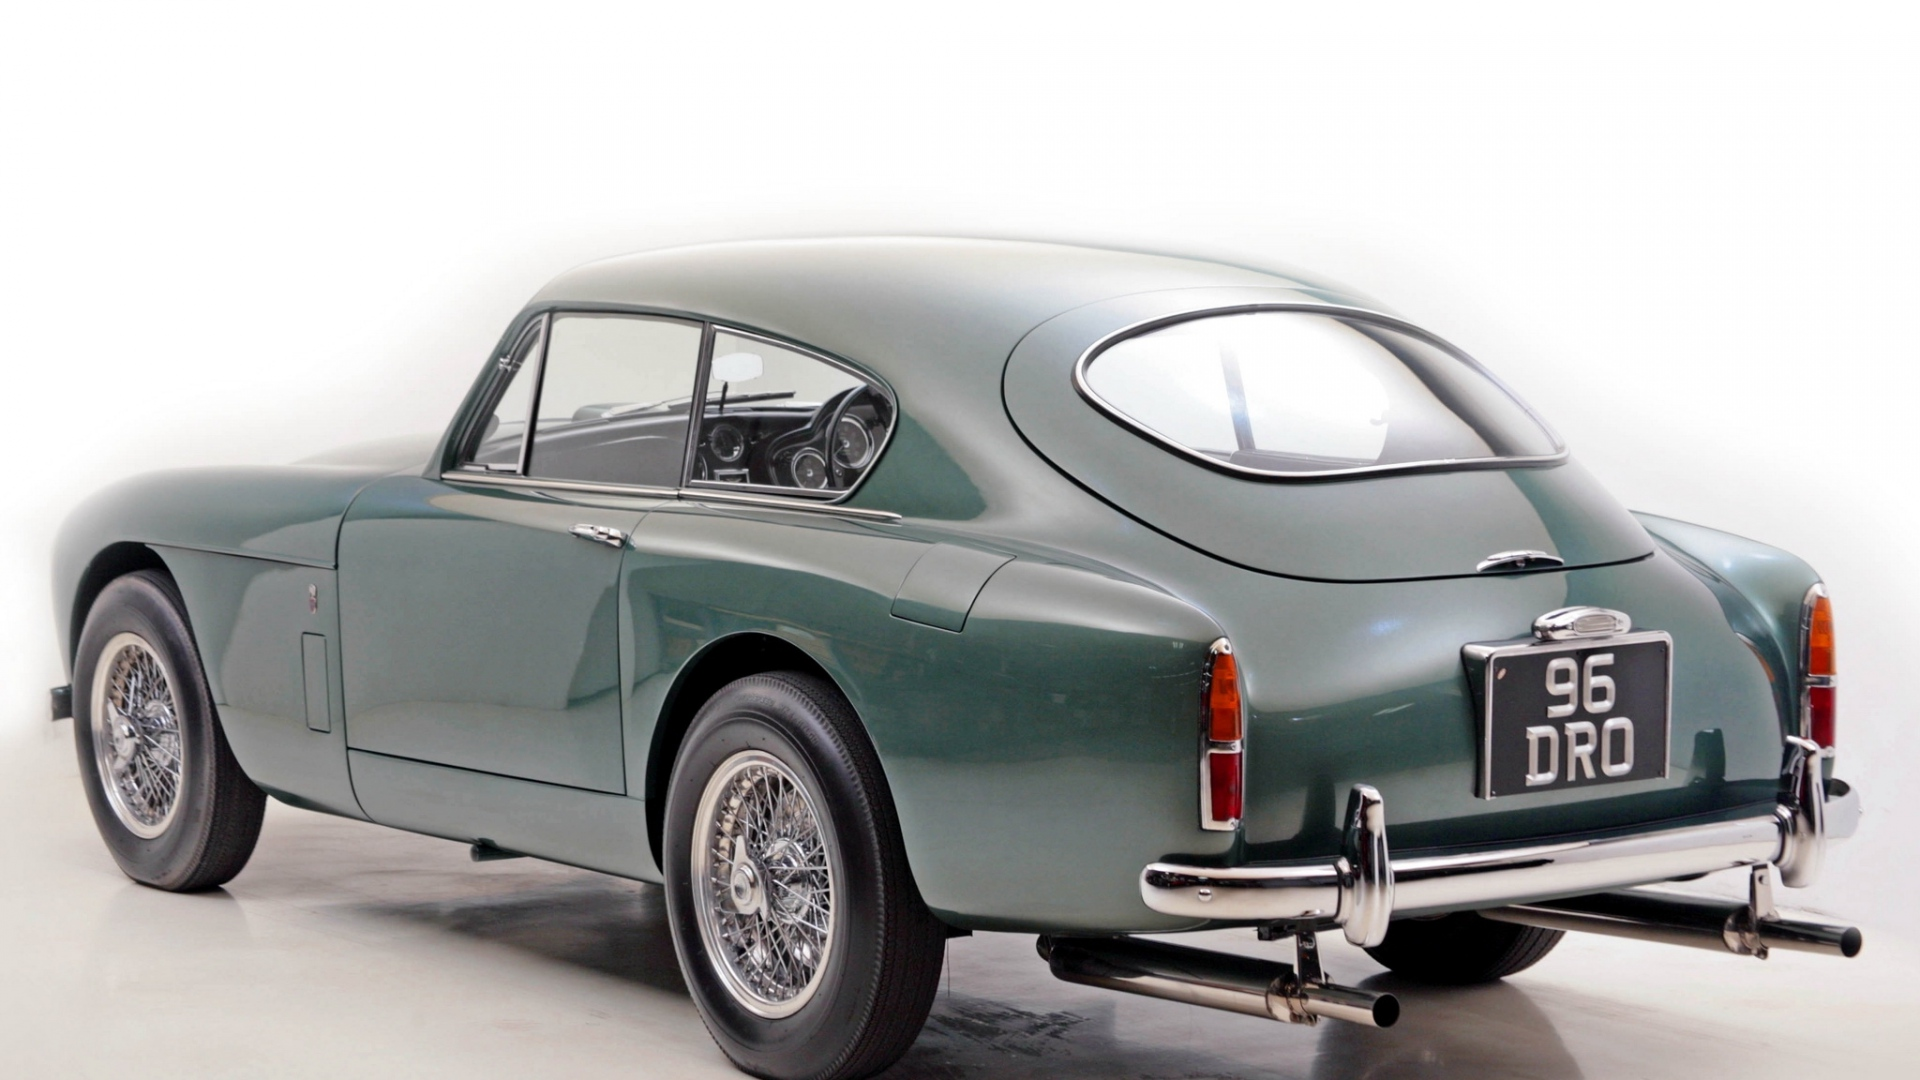 Download Wallpaper 1920x1080 Aston Martin 1958 Green Side View Images, Photos, Reviews